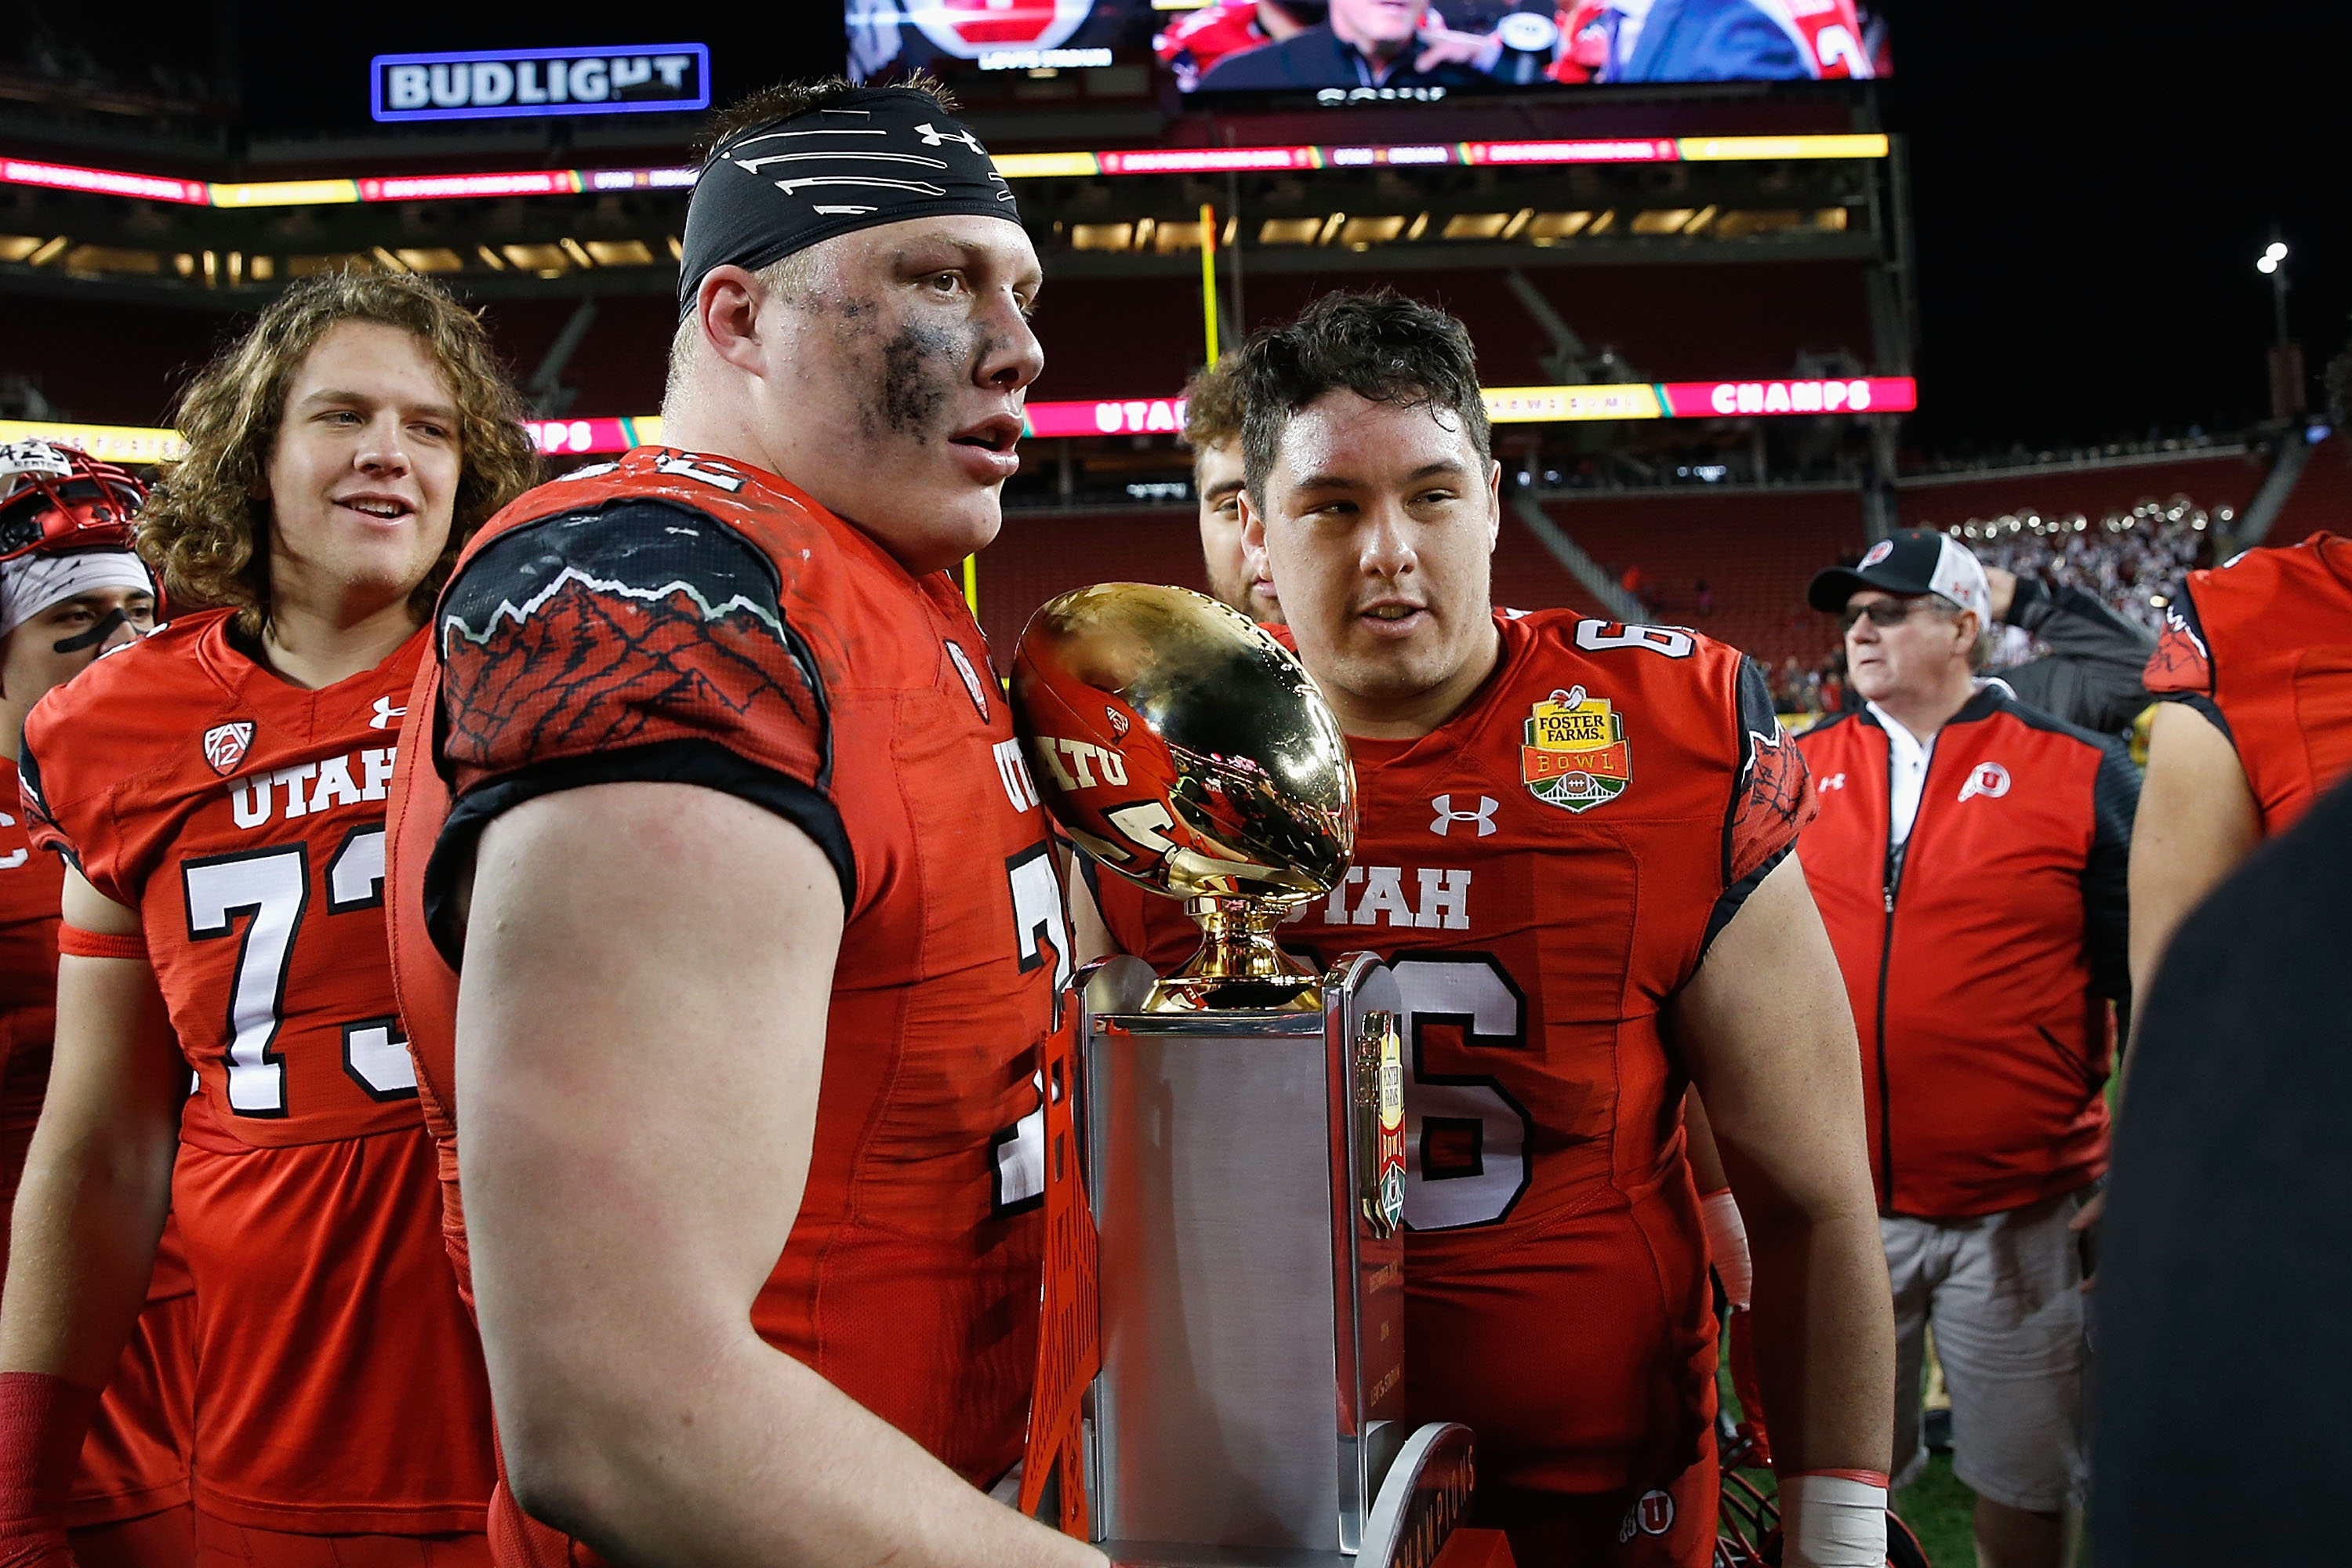 Garett Bolles, center, of the Utah Utes with the trophy after a win against the Indiana Hoosiers in the Foster Farms Bowl game on December 28, 2016. (Photo by Lachlan Cunningham/Getty Images)